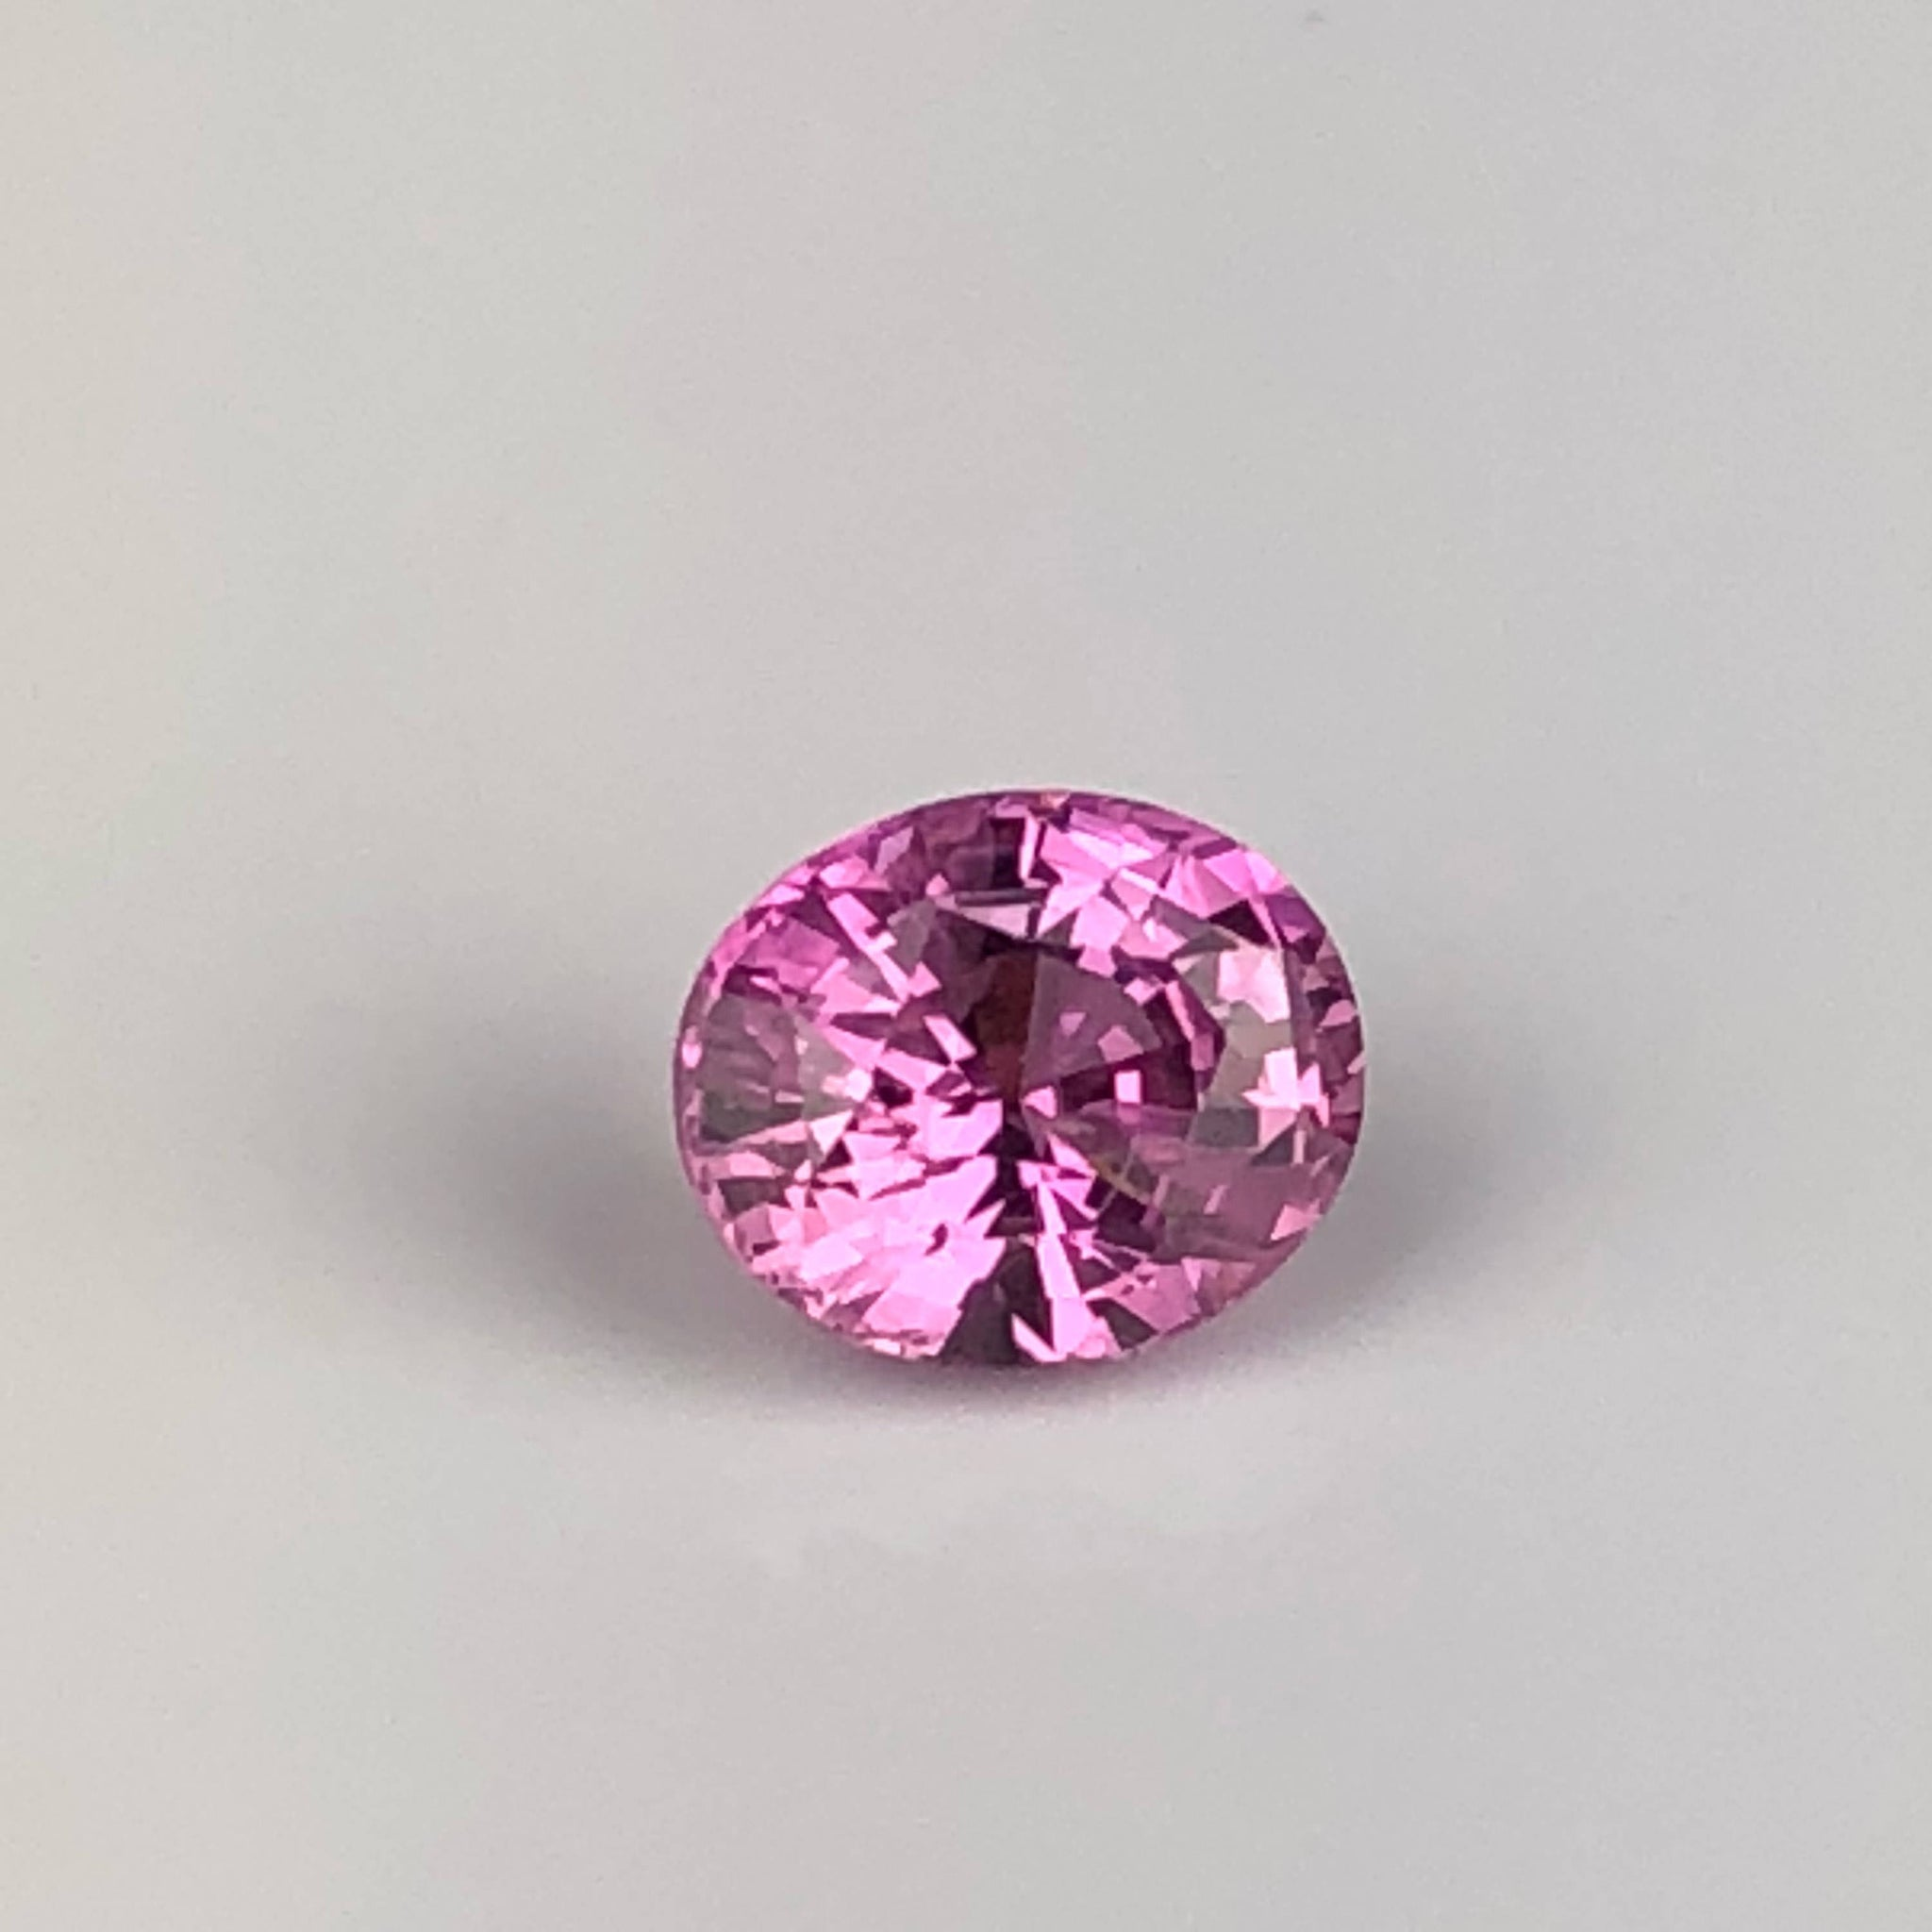 maybe pink untreated white here sapphire i up is unheated set in my s a see box she setting gold and beauty fix had want natural topic to those with blue thailand from